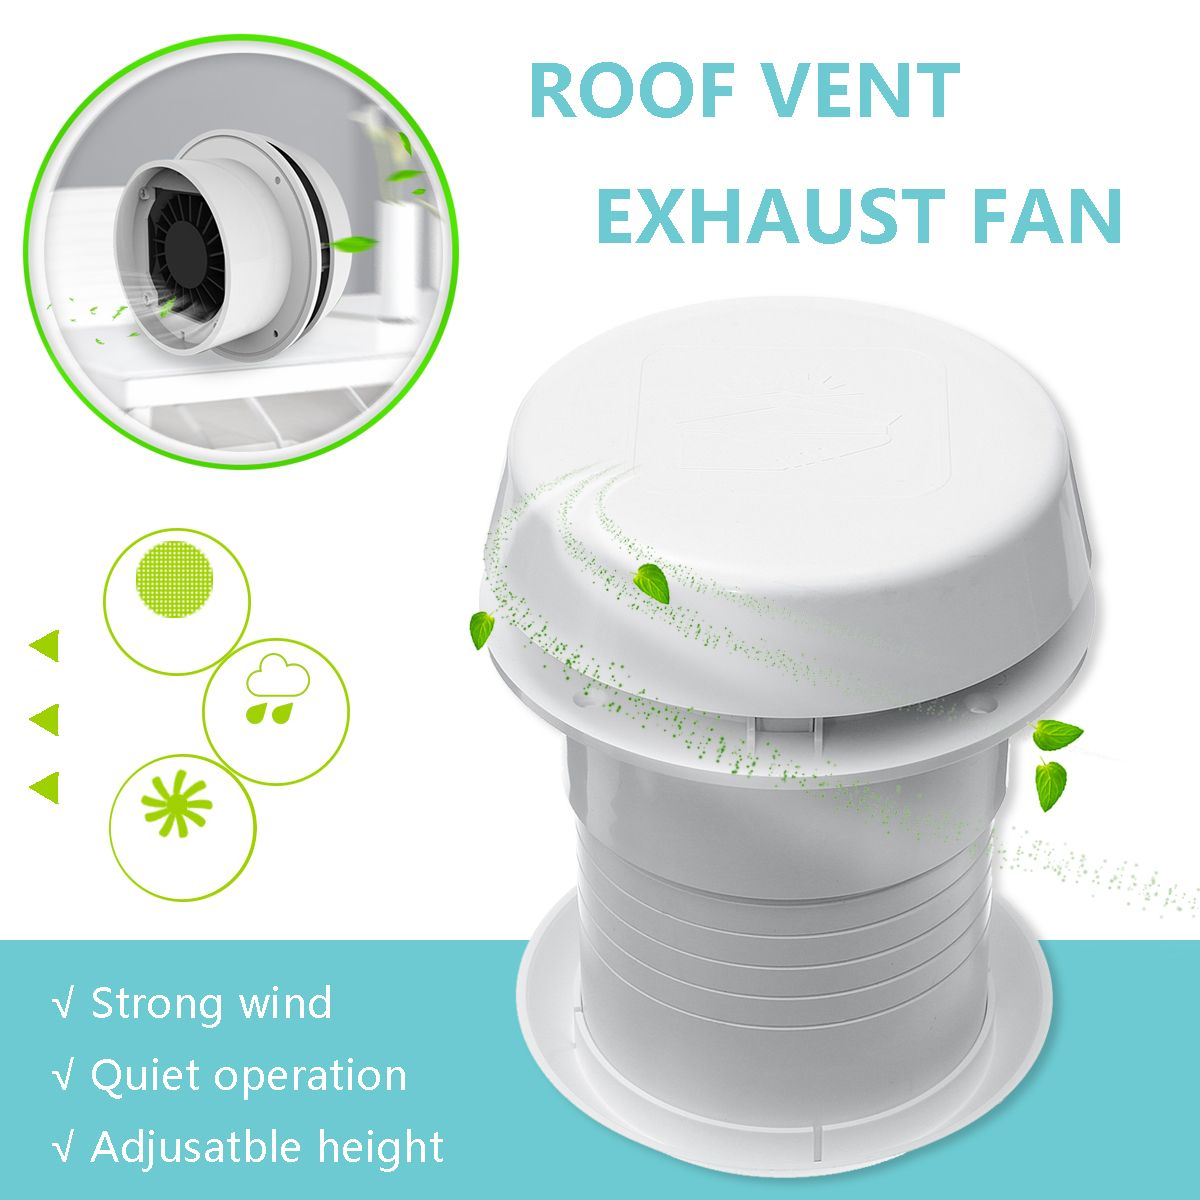 12v 1800 Rmp Rv Car Motorhome Roof Vent Ventilation Cooling Exhaust Fan Car Electronics From Automobiles Motorcycles On Banggood Com Exhaust Fan Roof Vents Motorhome